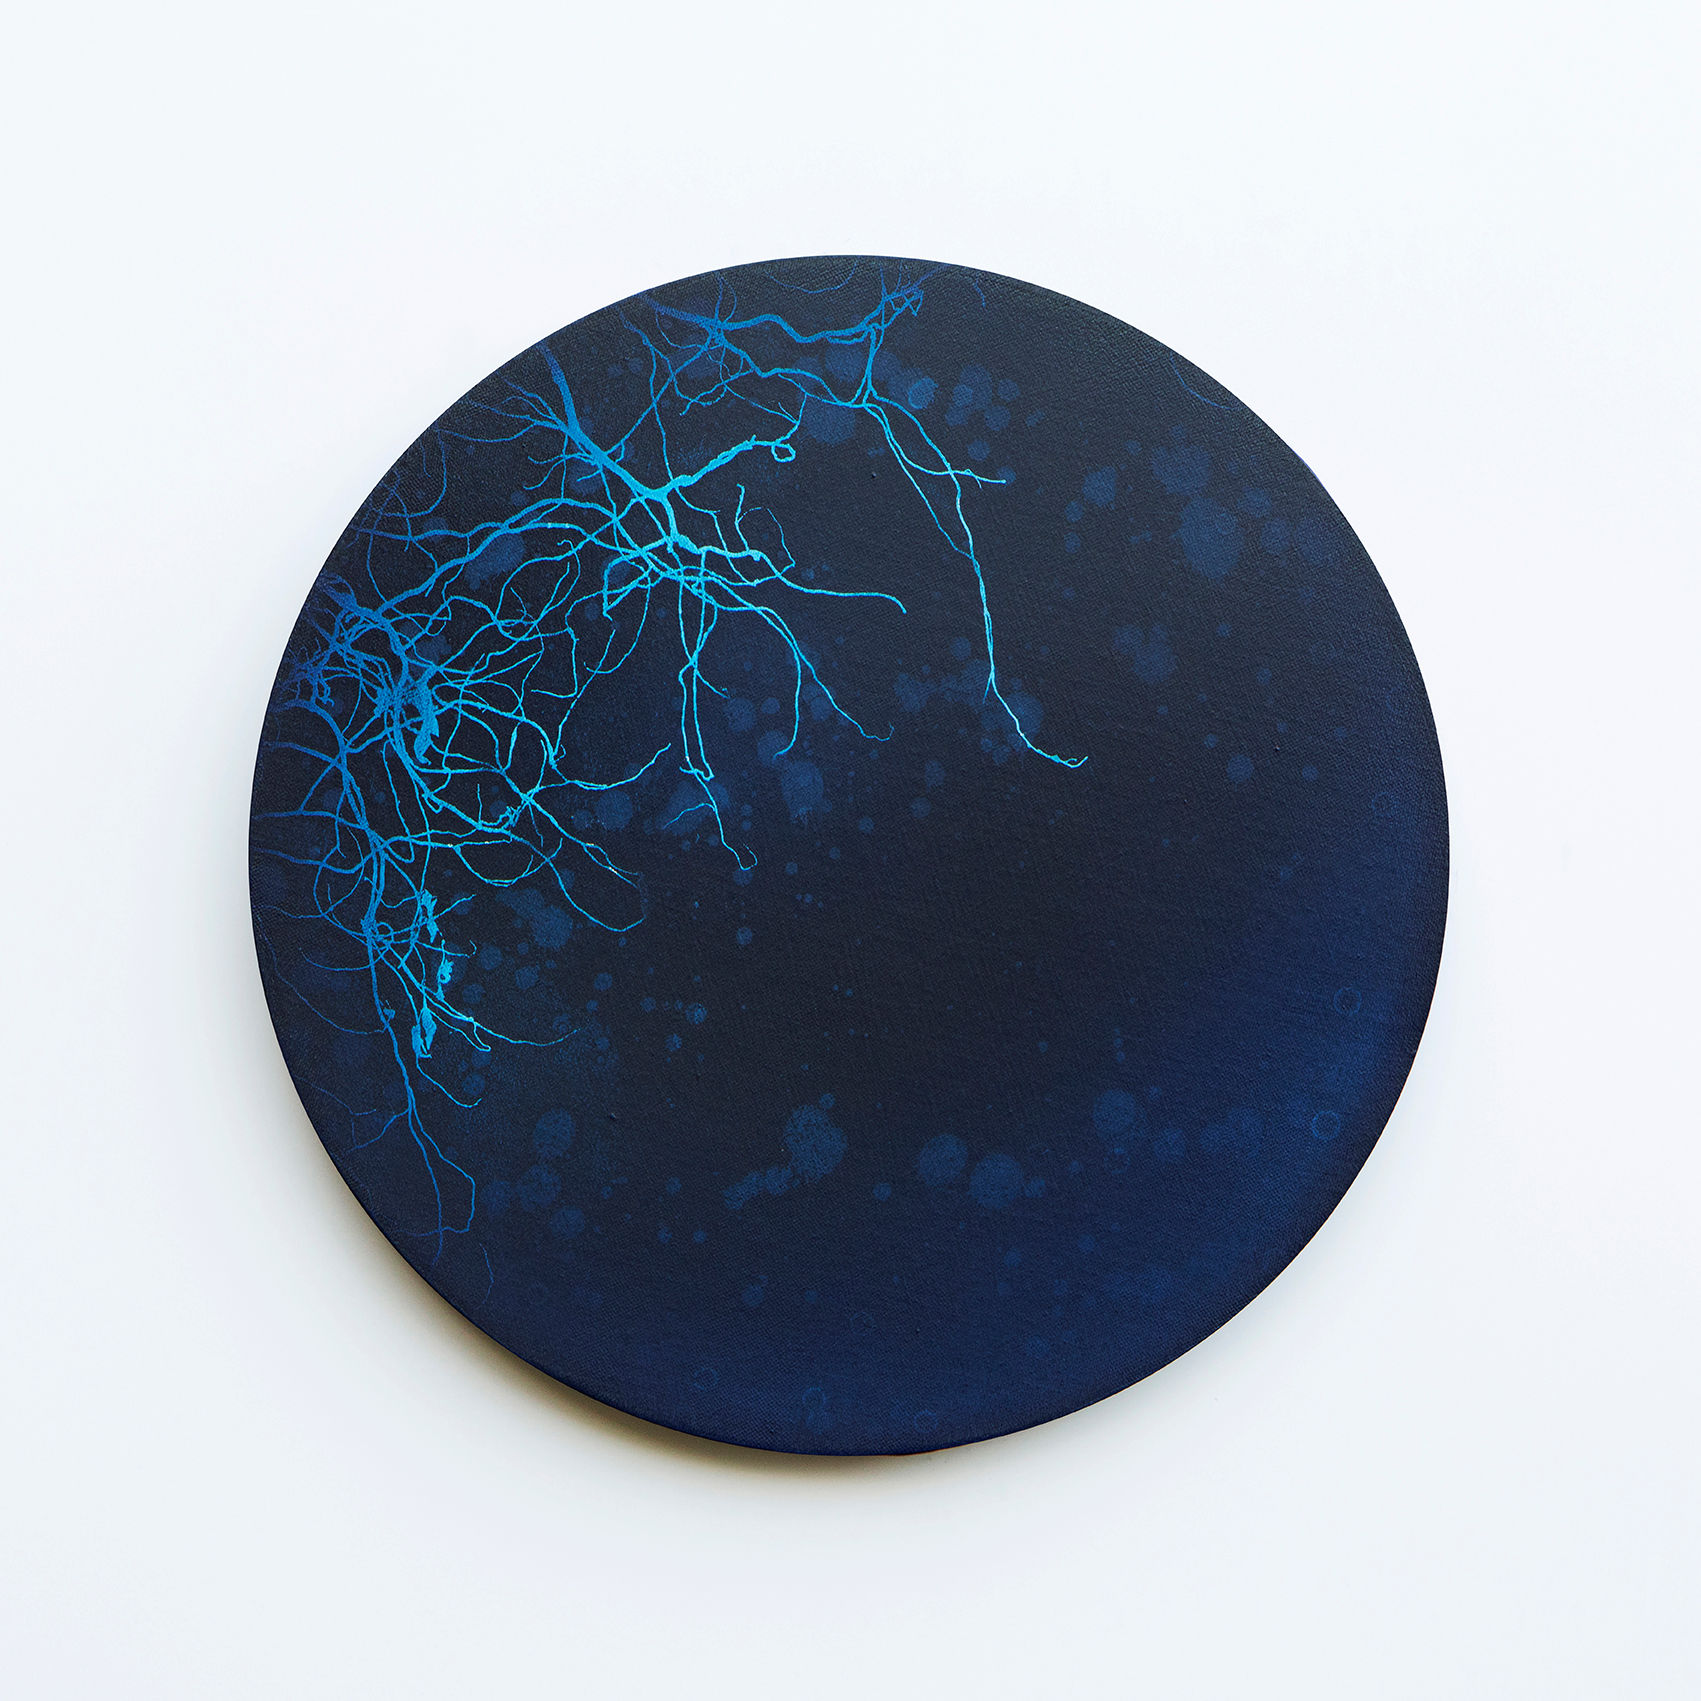 WATERSCAPE_내 안의 바깥 27, Diameter 40cm, Traditional pigment, water-print, water-drawing on canvas, 2018